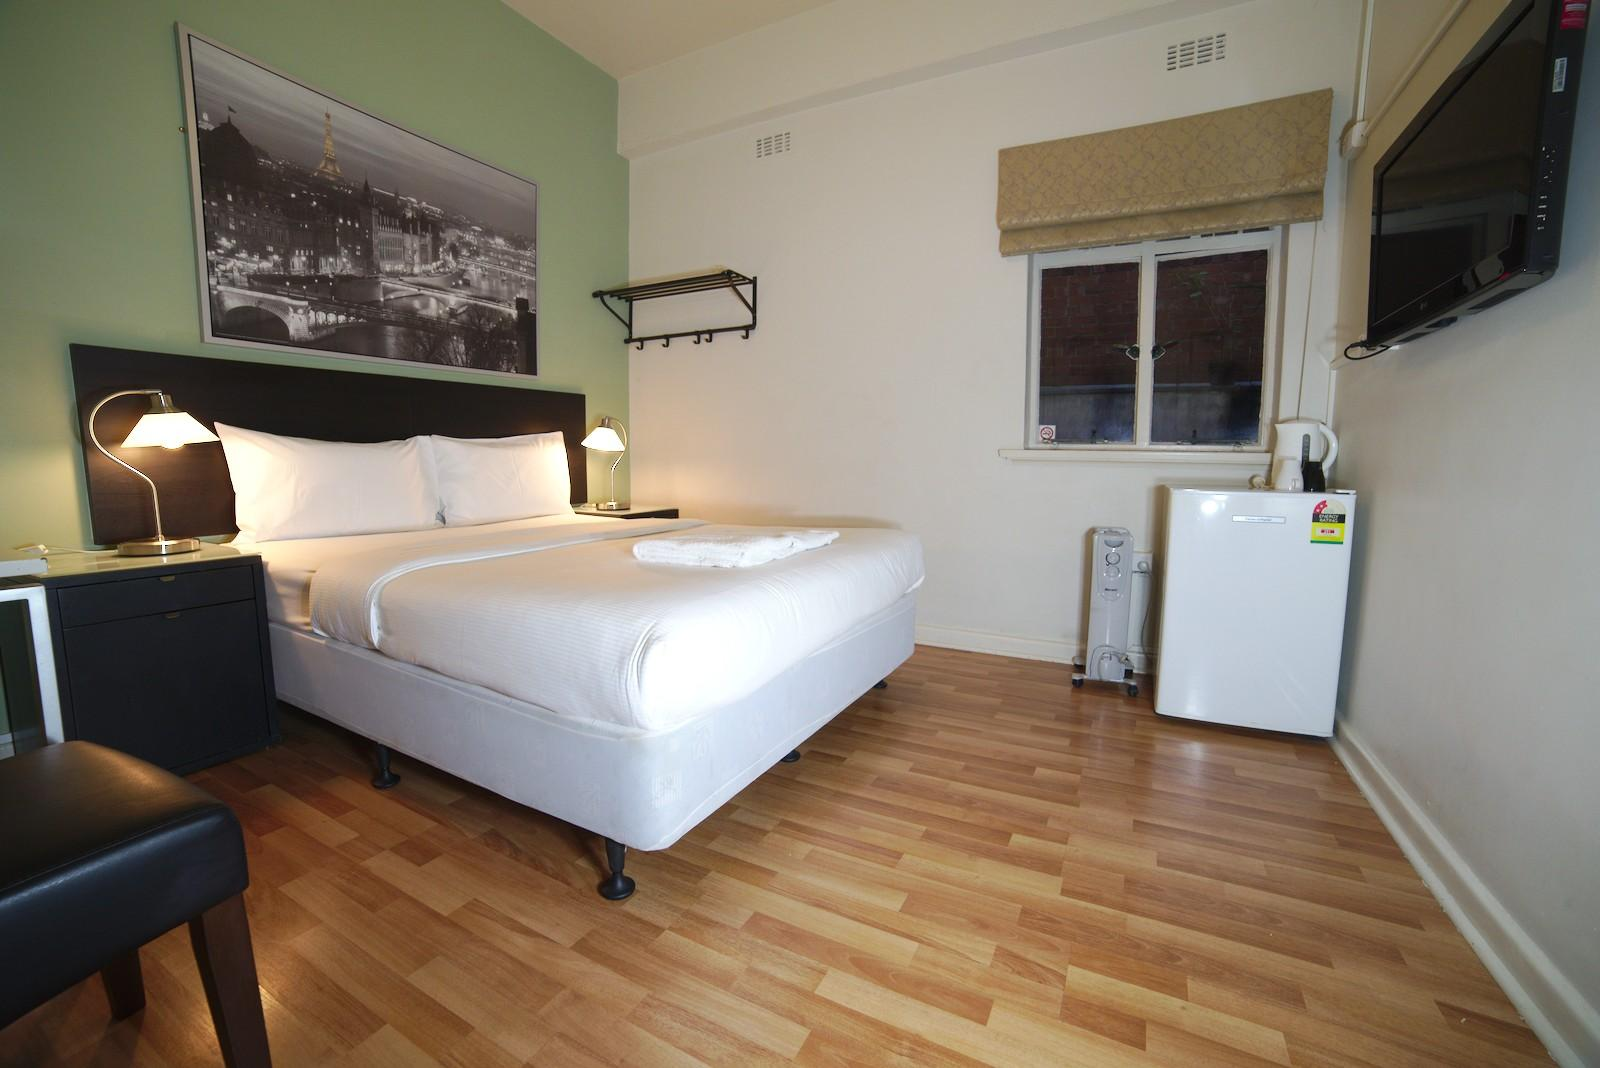 DOUBLE TWO BEDS - ROOM ONLY